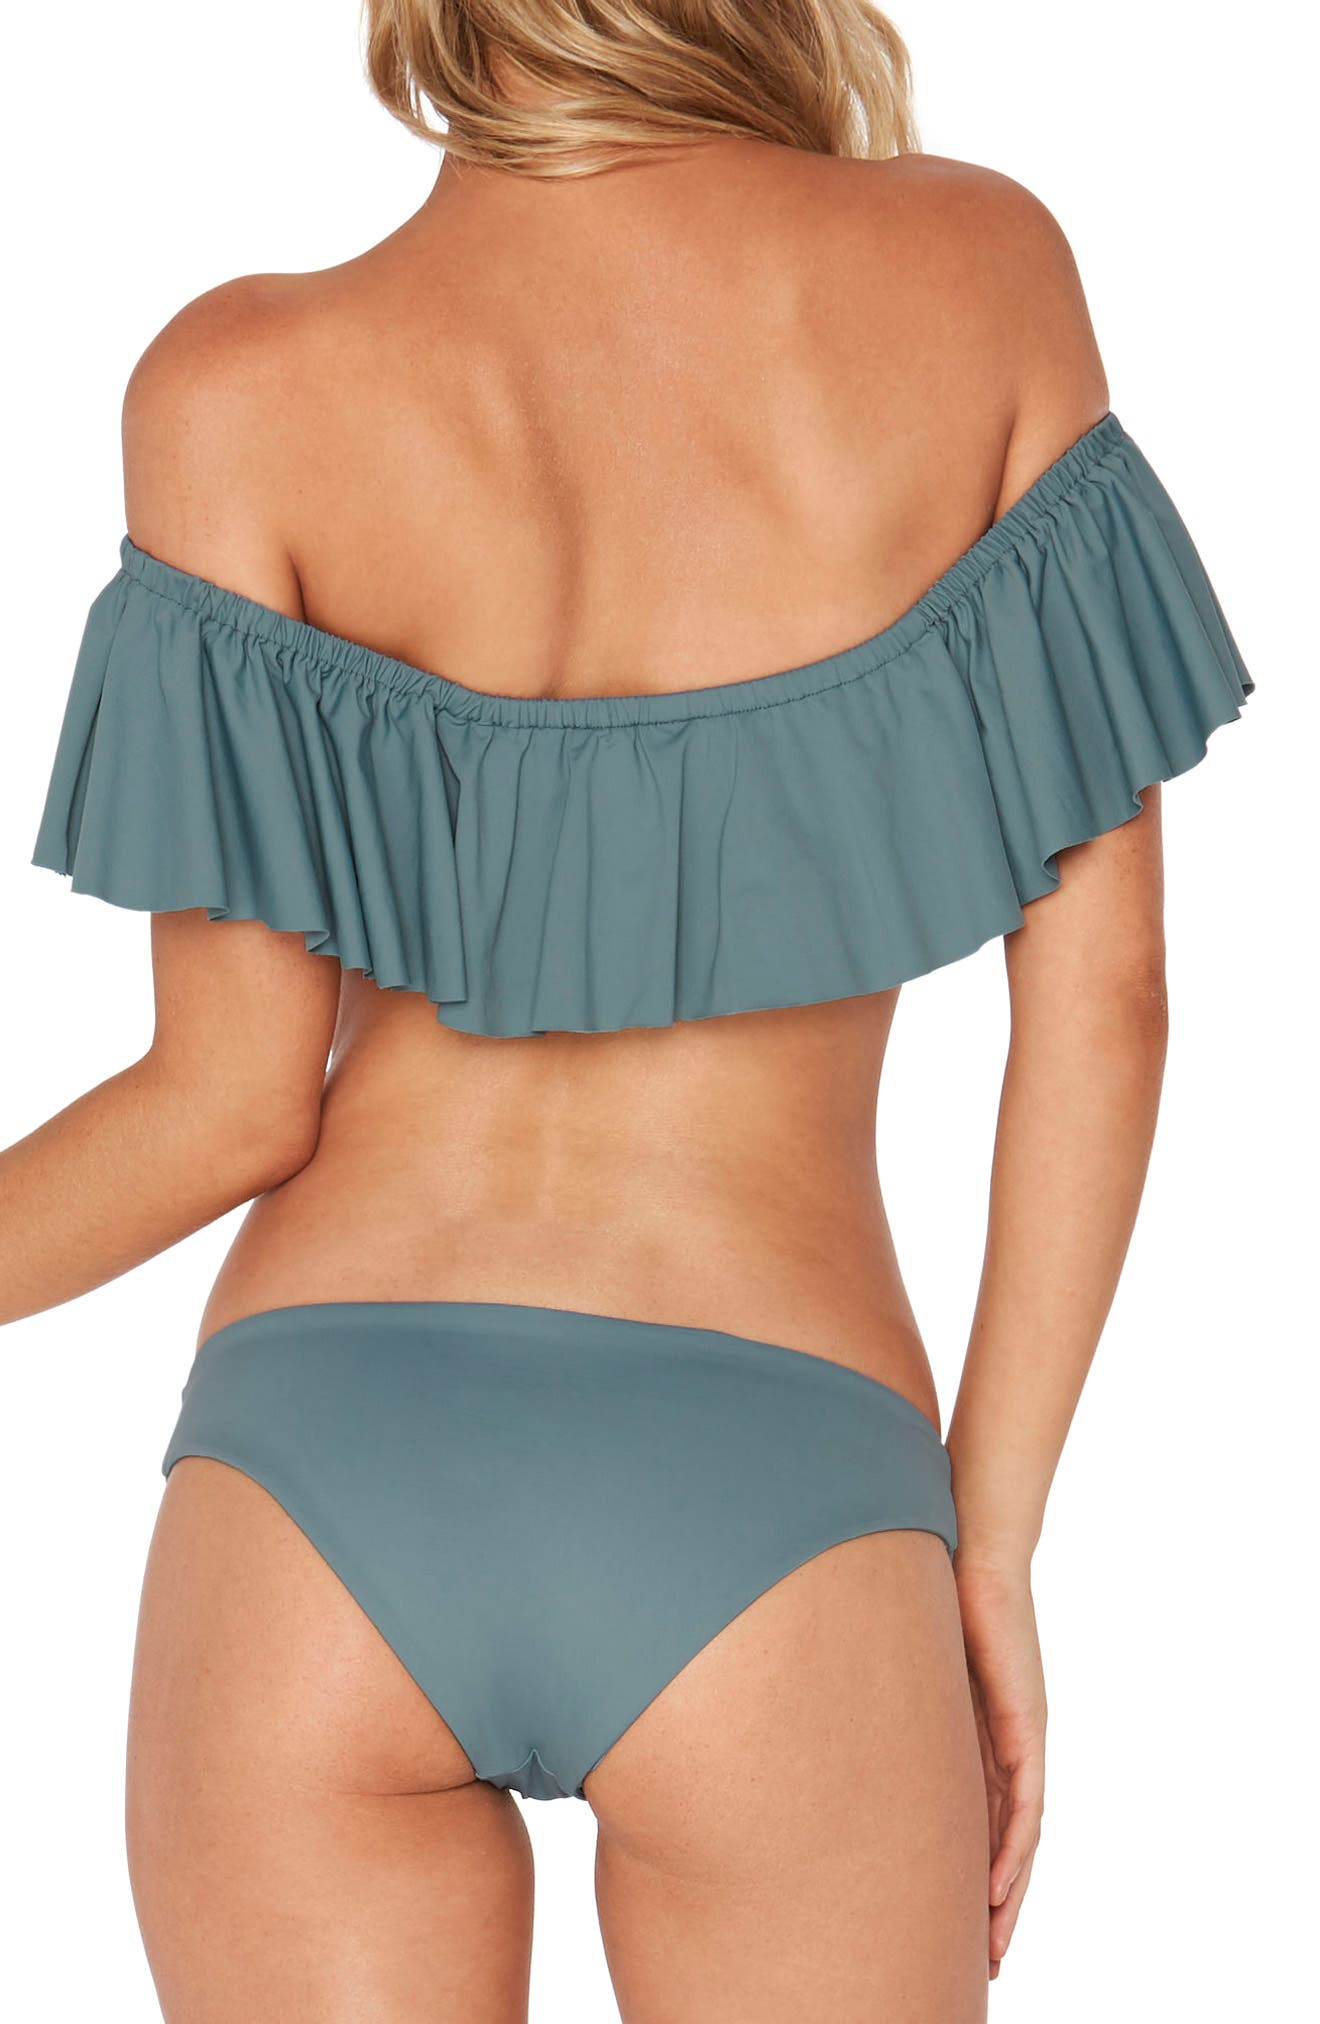 Ruffle Swim Top,                             Alternate thumbnail 2, color,                             440